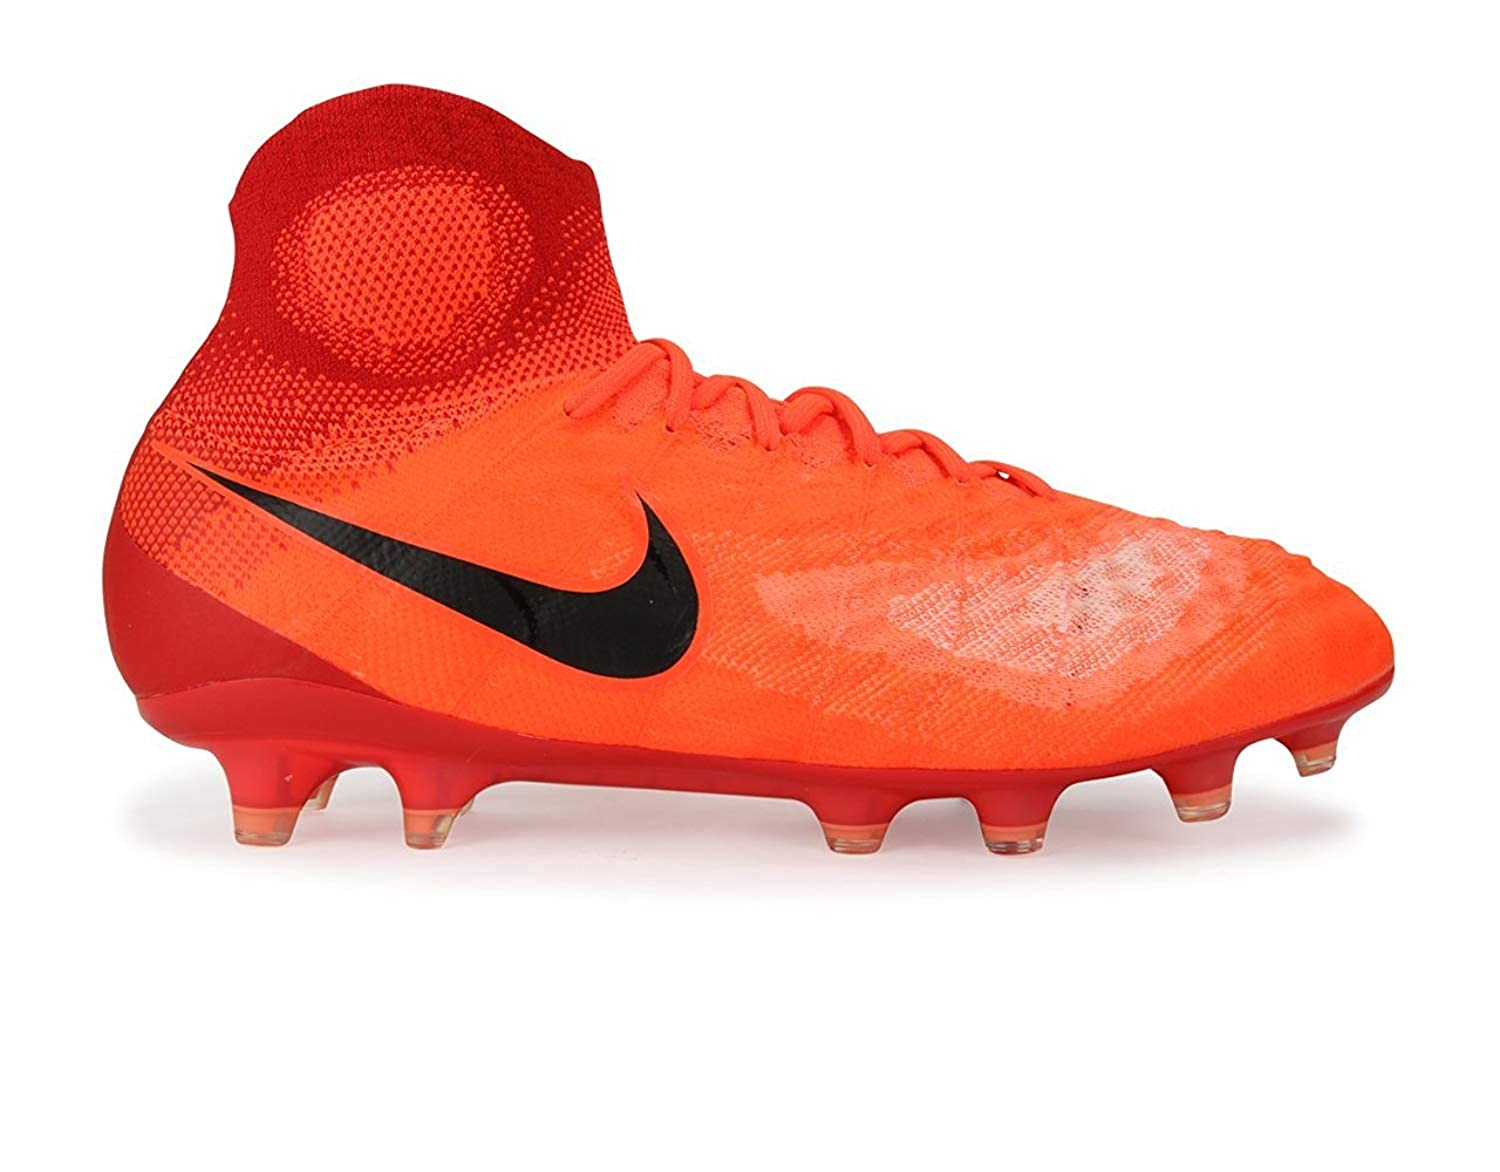 lowest price e98f2 e1996 Amazon.com   Nike Kids Magista Obra II FG Total Crimson Black University  Red Soccer Shoes   Soccer